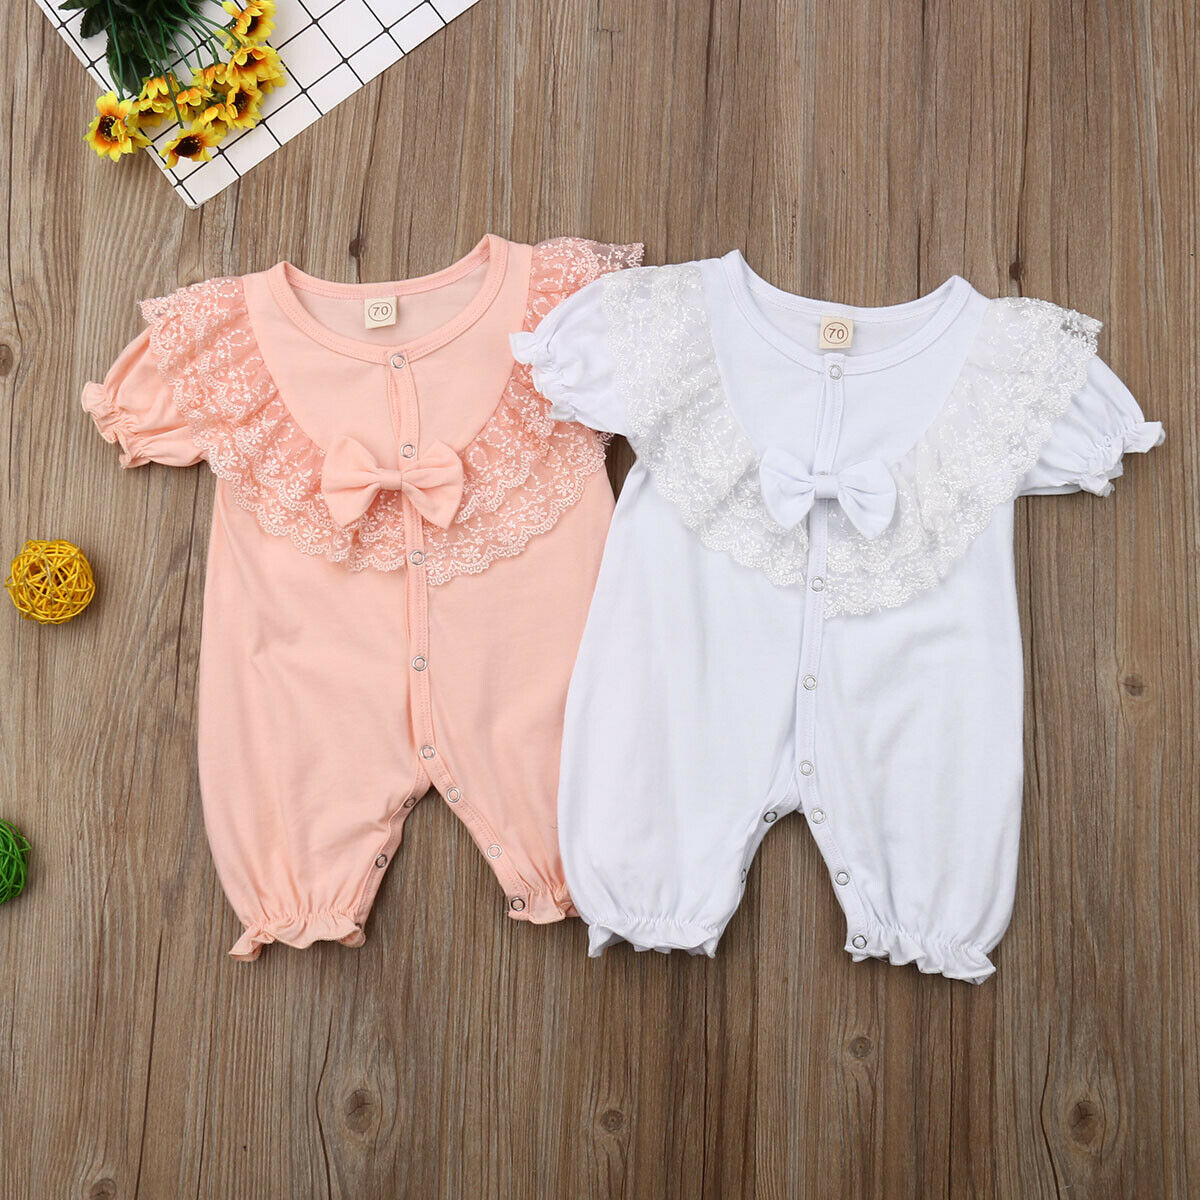 2019 Newest Style Newborn Baby Girls Spring Summer Button Up Lace Short Sleeve Romper Jumpsuit Clothes Outfits 6-24months